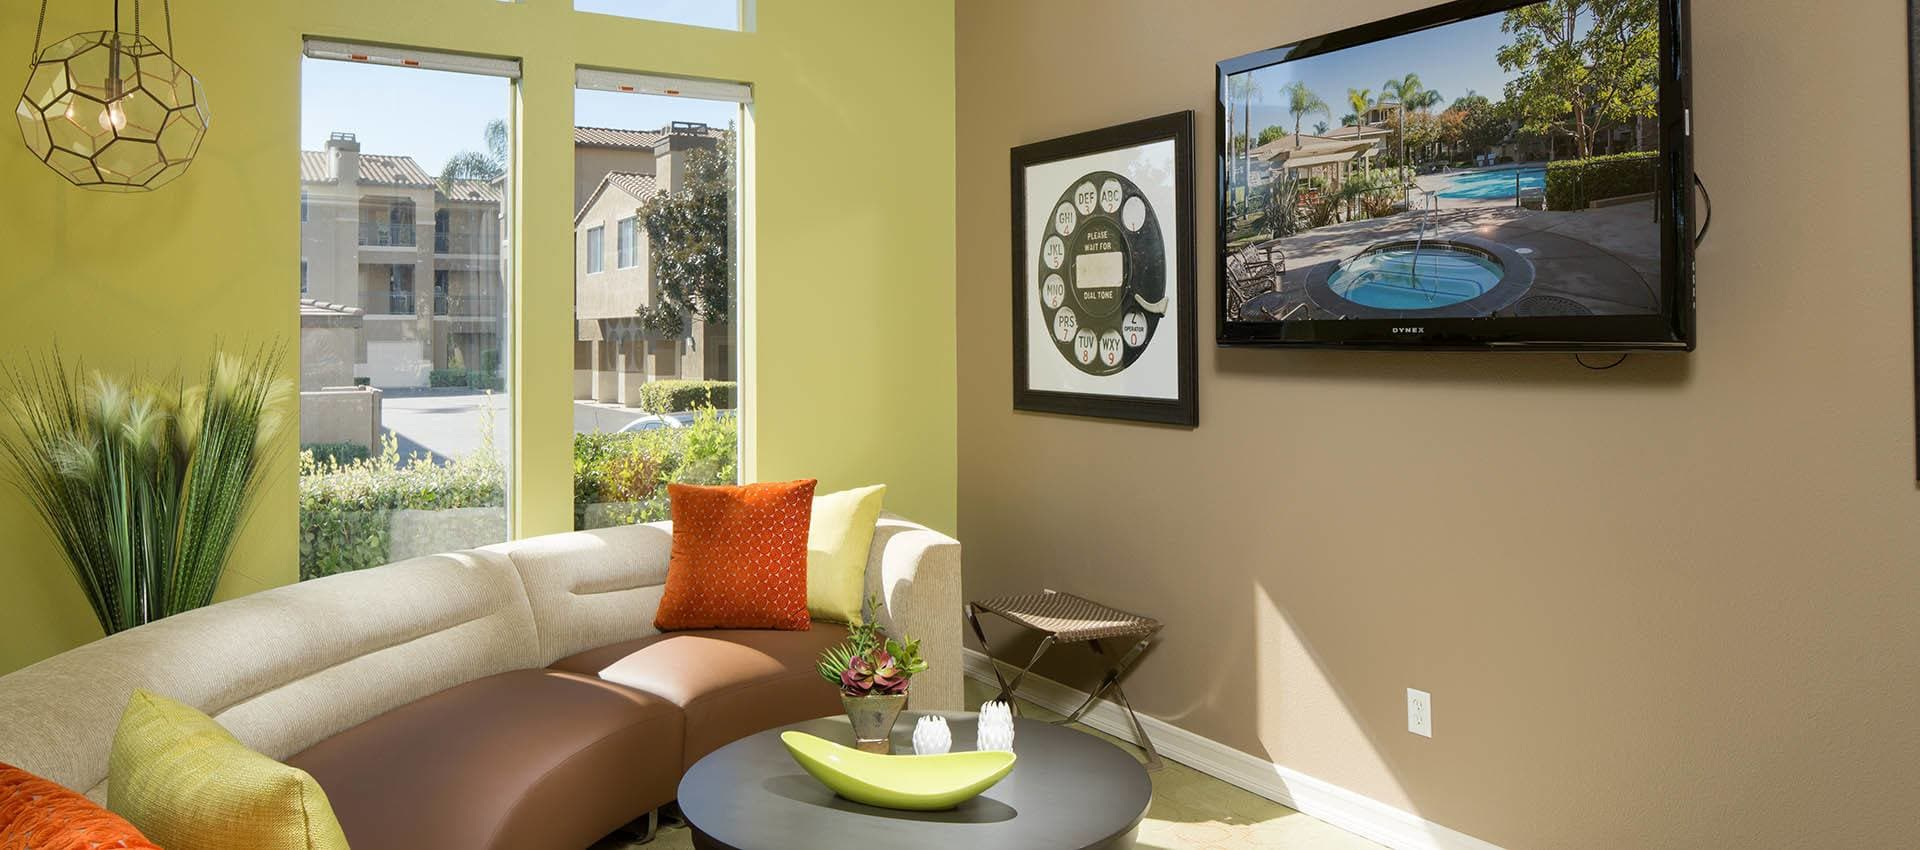 Screening Gaming Room at Alize at Aliso Viejo Apartment Homes in Aliso Viejo, California